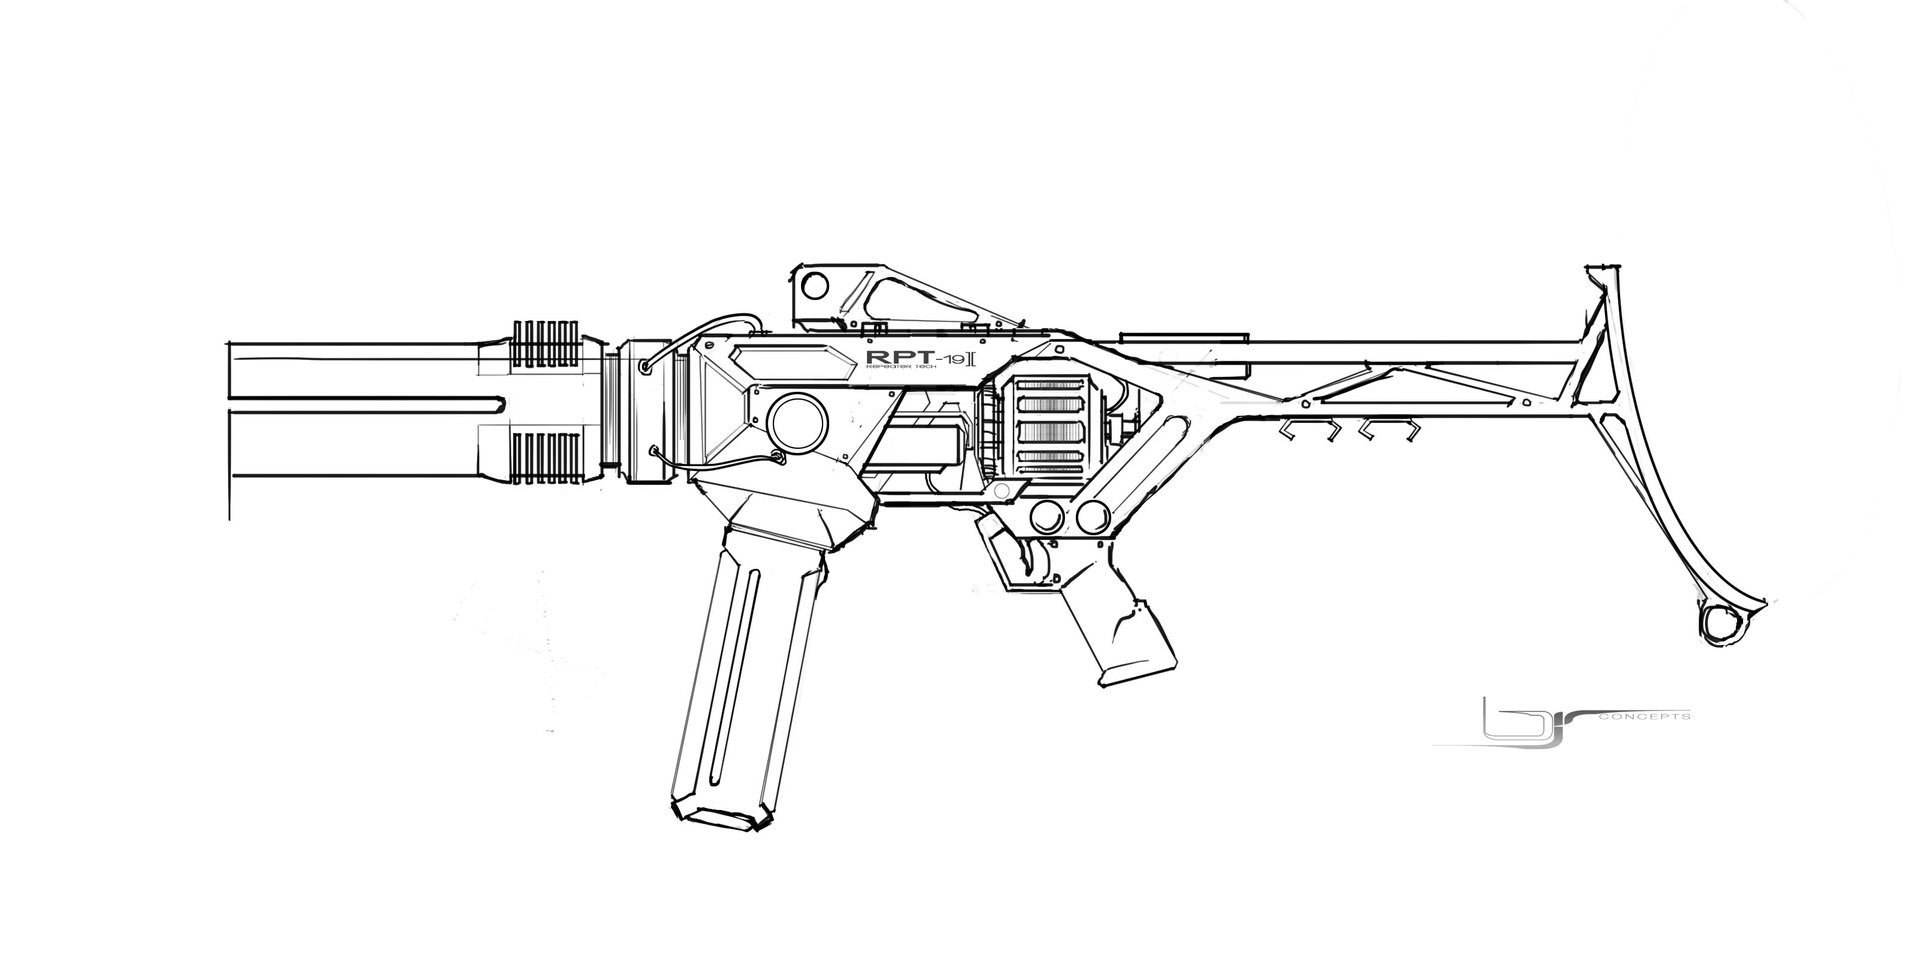 Brandon richard repeater gun 01 linework